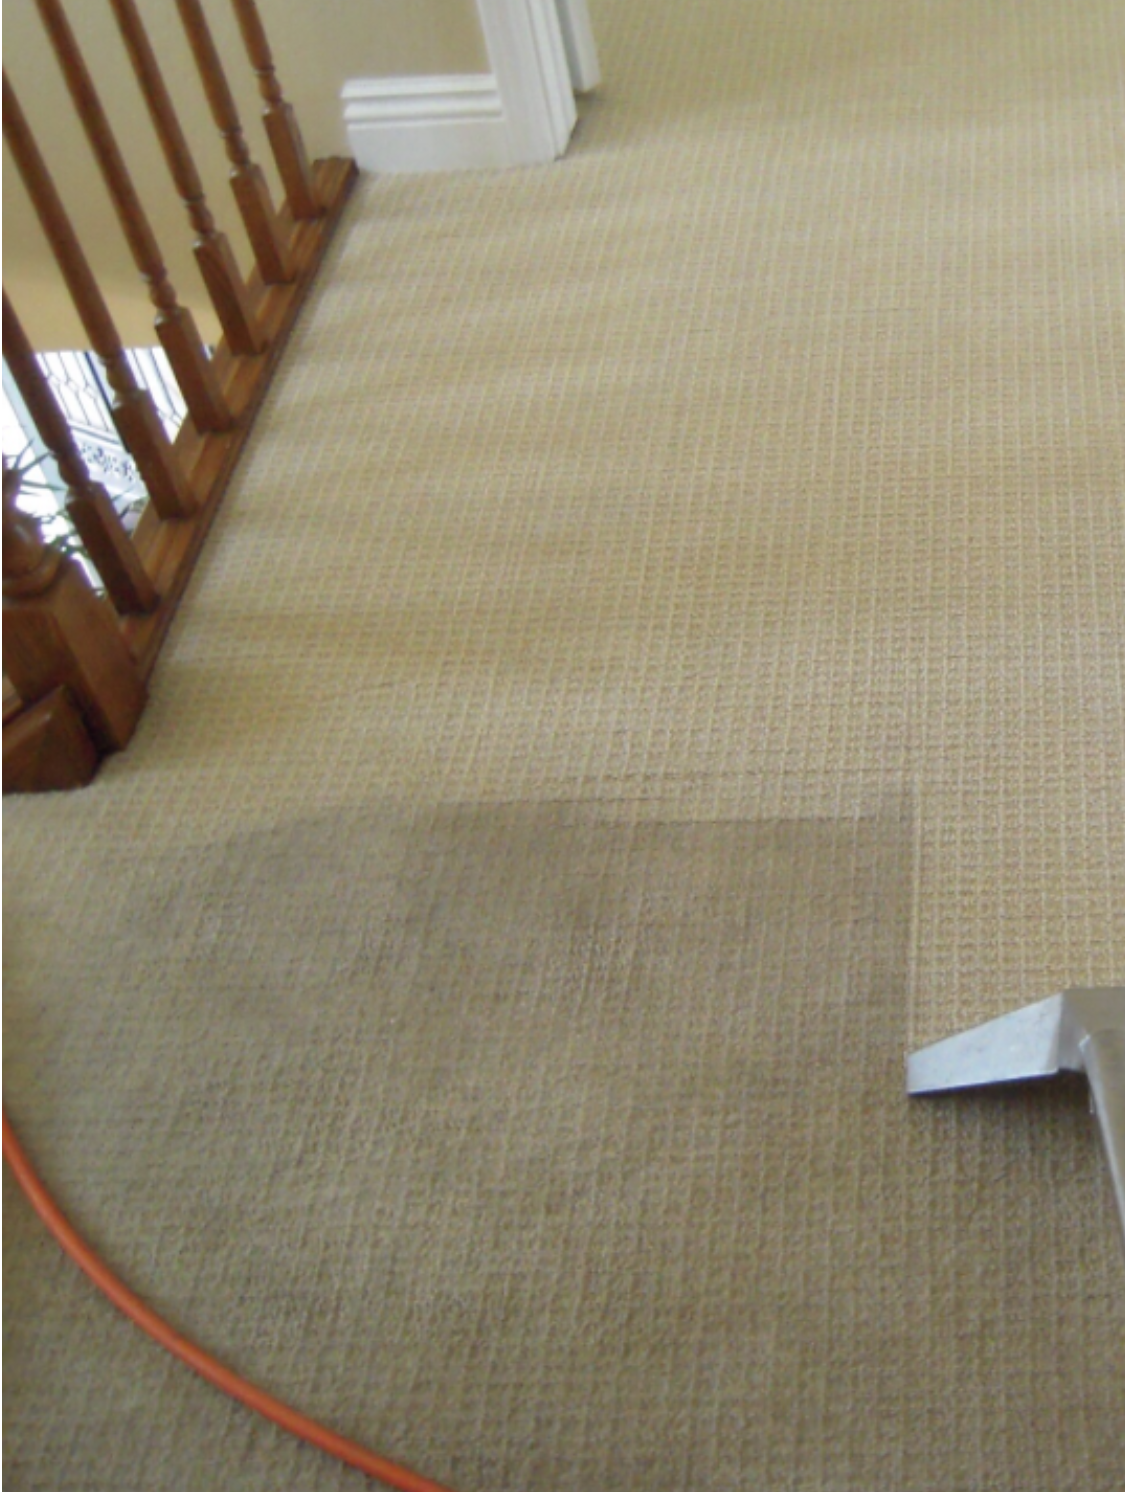 Super Steamers Carpet Cleaners image 0